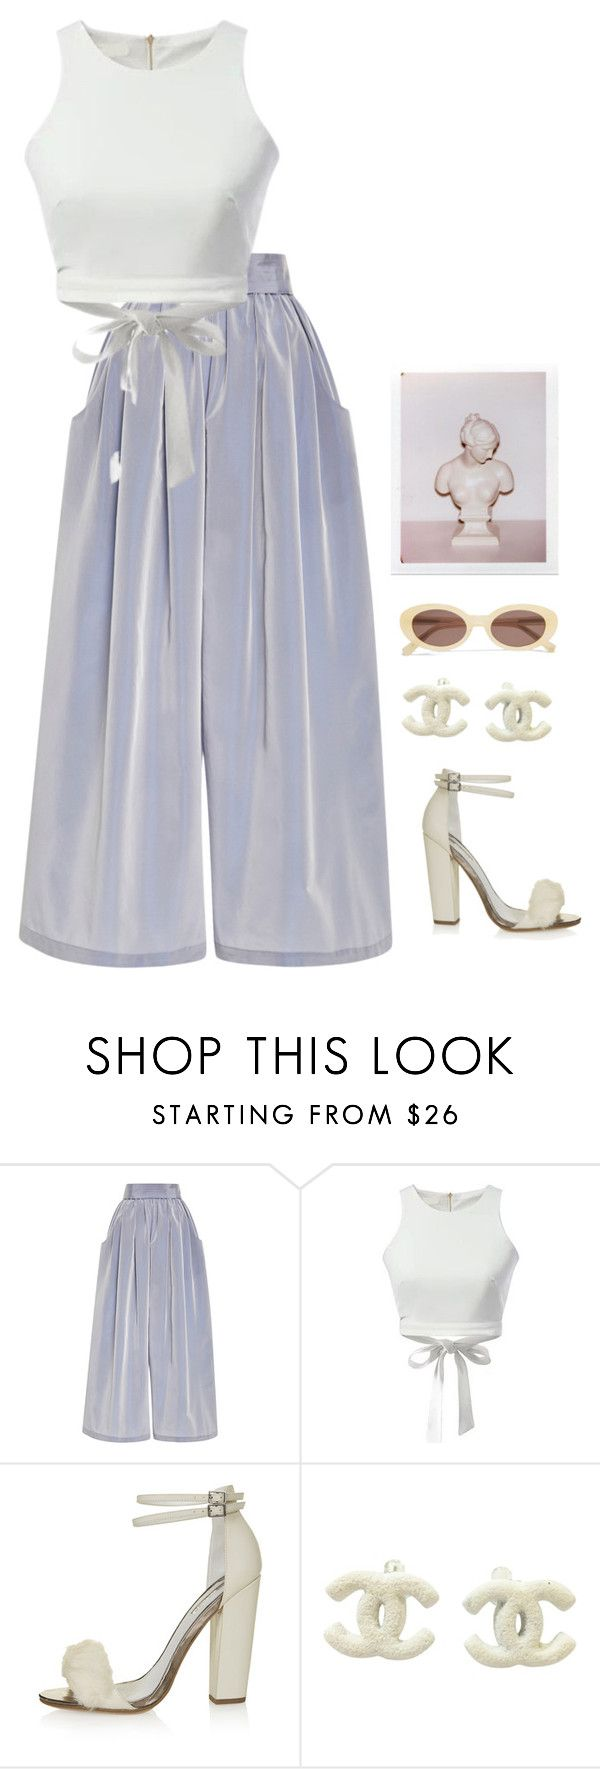 """Untitled #930"" by streetyouth ❤ liked on Polyvore featuring Tome, WithChic, Topshop, Chanel and Elizabeth and James"